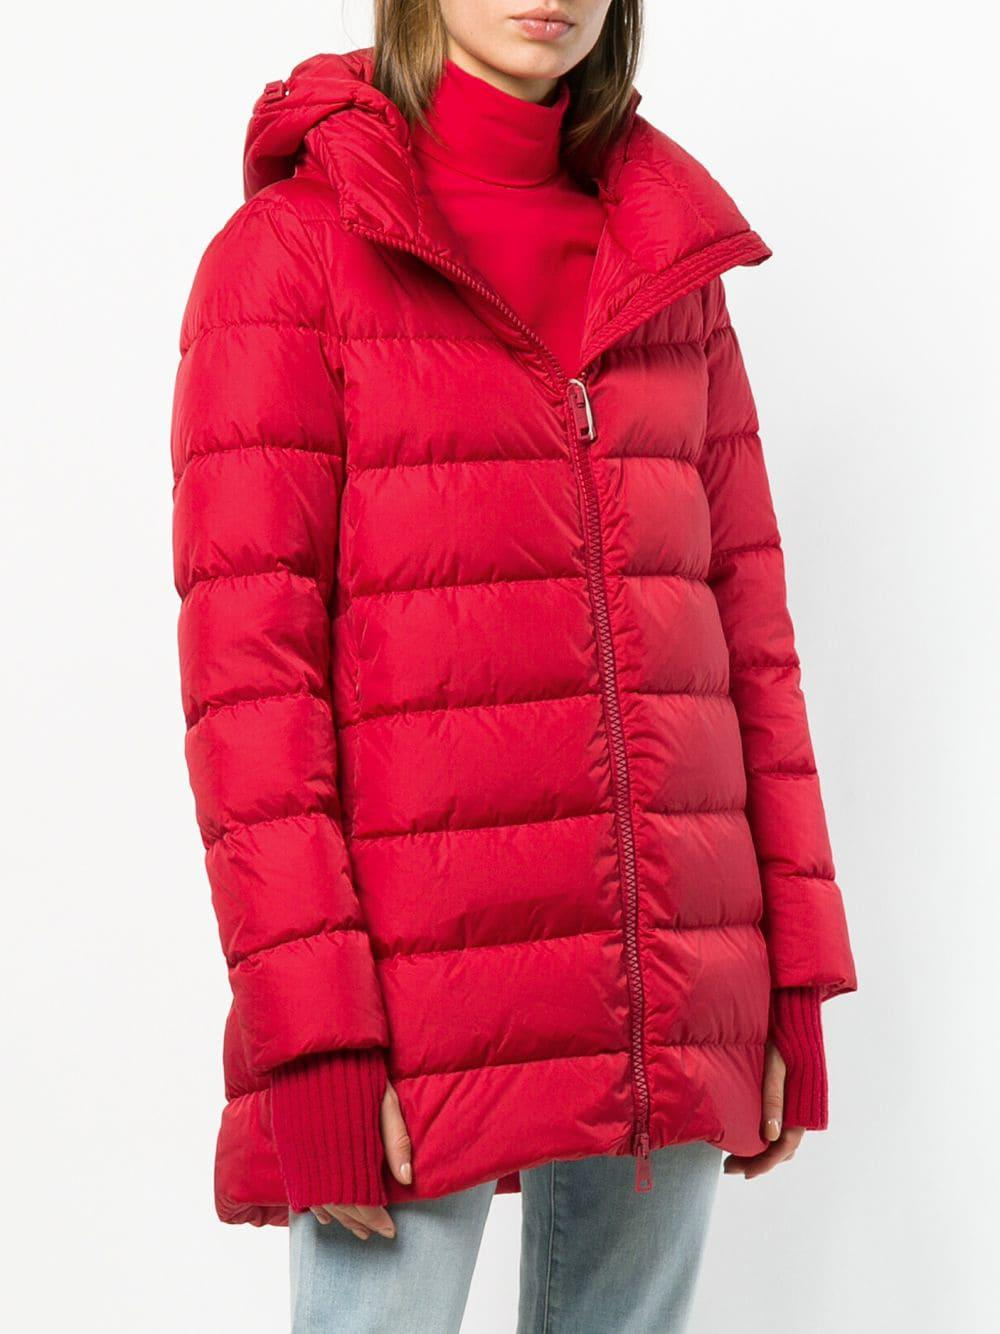 21b28e00295 Herno Hooded Padded Coat in Red - Lyst